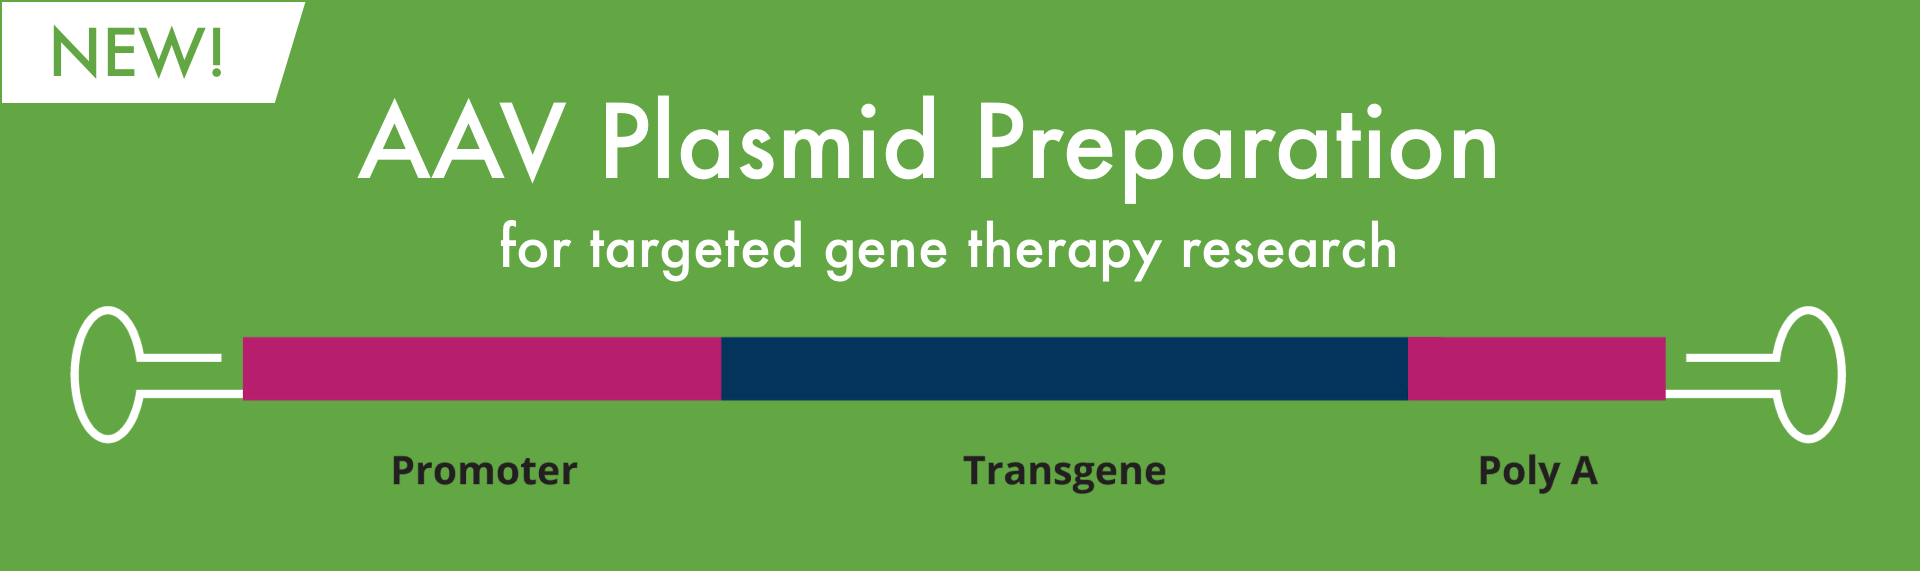 AAV Plasmid Preparation